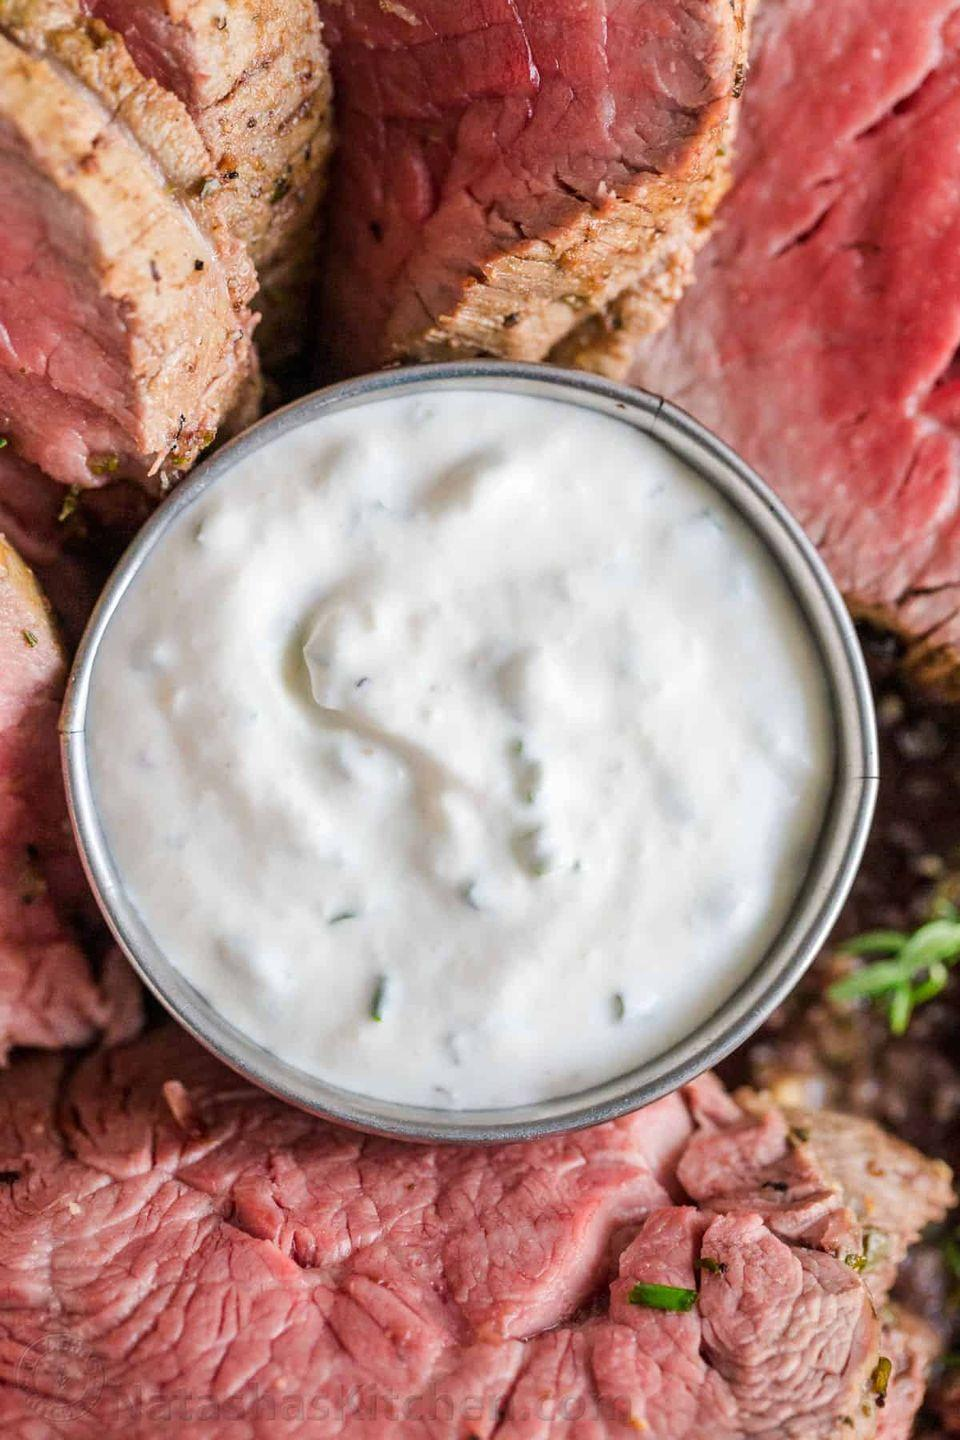 """<p>Creamy horseradish sauce is a steakhouse staple. Try it with prime rib, steak sandwiches, and more. </p><p><strong>Get the recipe at <a href=""""https://natashaskitchen.com/horseradish-sauce-recipe/"""" rel=""""nofollow noopener"""" target=""""_blank"""" data-ylk=""""slk:Natasha's Kitchen"""" class=""""link rapid-noclick-resp"""">Natasha's Kitchen</a>.</strong></p><p><a class=""""link rapid-noclick-resp"""" href=""""https://go.redirectingat.com?id=74968X1596630&url=https%3A%2F%2Fwww.walmart.com%2Fbrowse%2Fhome%2Fmixing-bowls%2F4044_623679_133020_4496646_2514018%3Fpovid%3D4044%2B%257C%2B%2B%257C%2BMixingBowlsNavBar&sref=https%3A%2F%2Fwww.thepioneerwoman.com%2Ffood-cooking%2Frecipes%2Fg36383850%2Fsteak-sauce-recipes%2F"""" rel=""""nofollow noopener"""" target=""""_blank"""" data-ylk=""""slk:SHOP MIXING BOWLS"""">SHOP MIXING BOWLS</a></p>"""